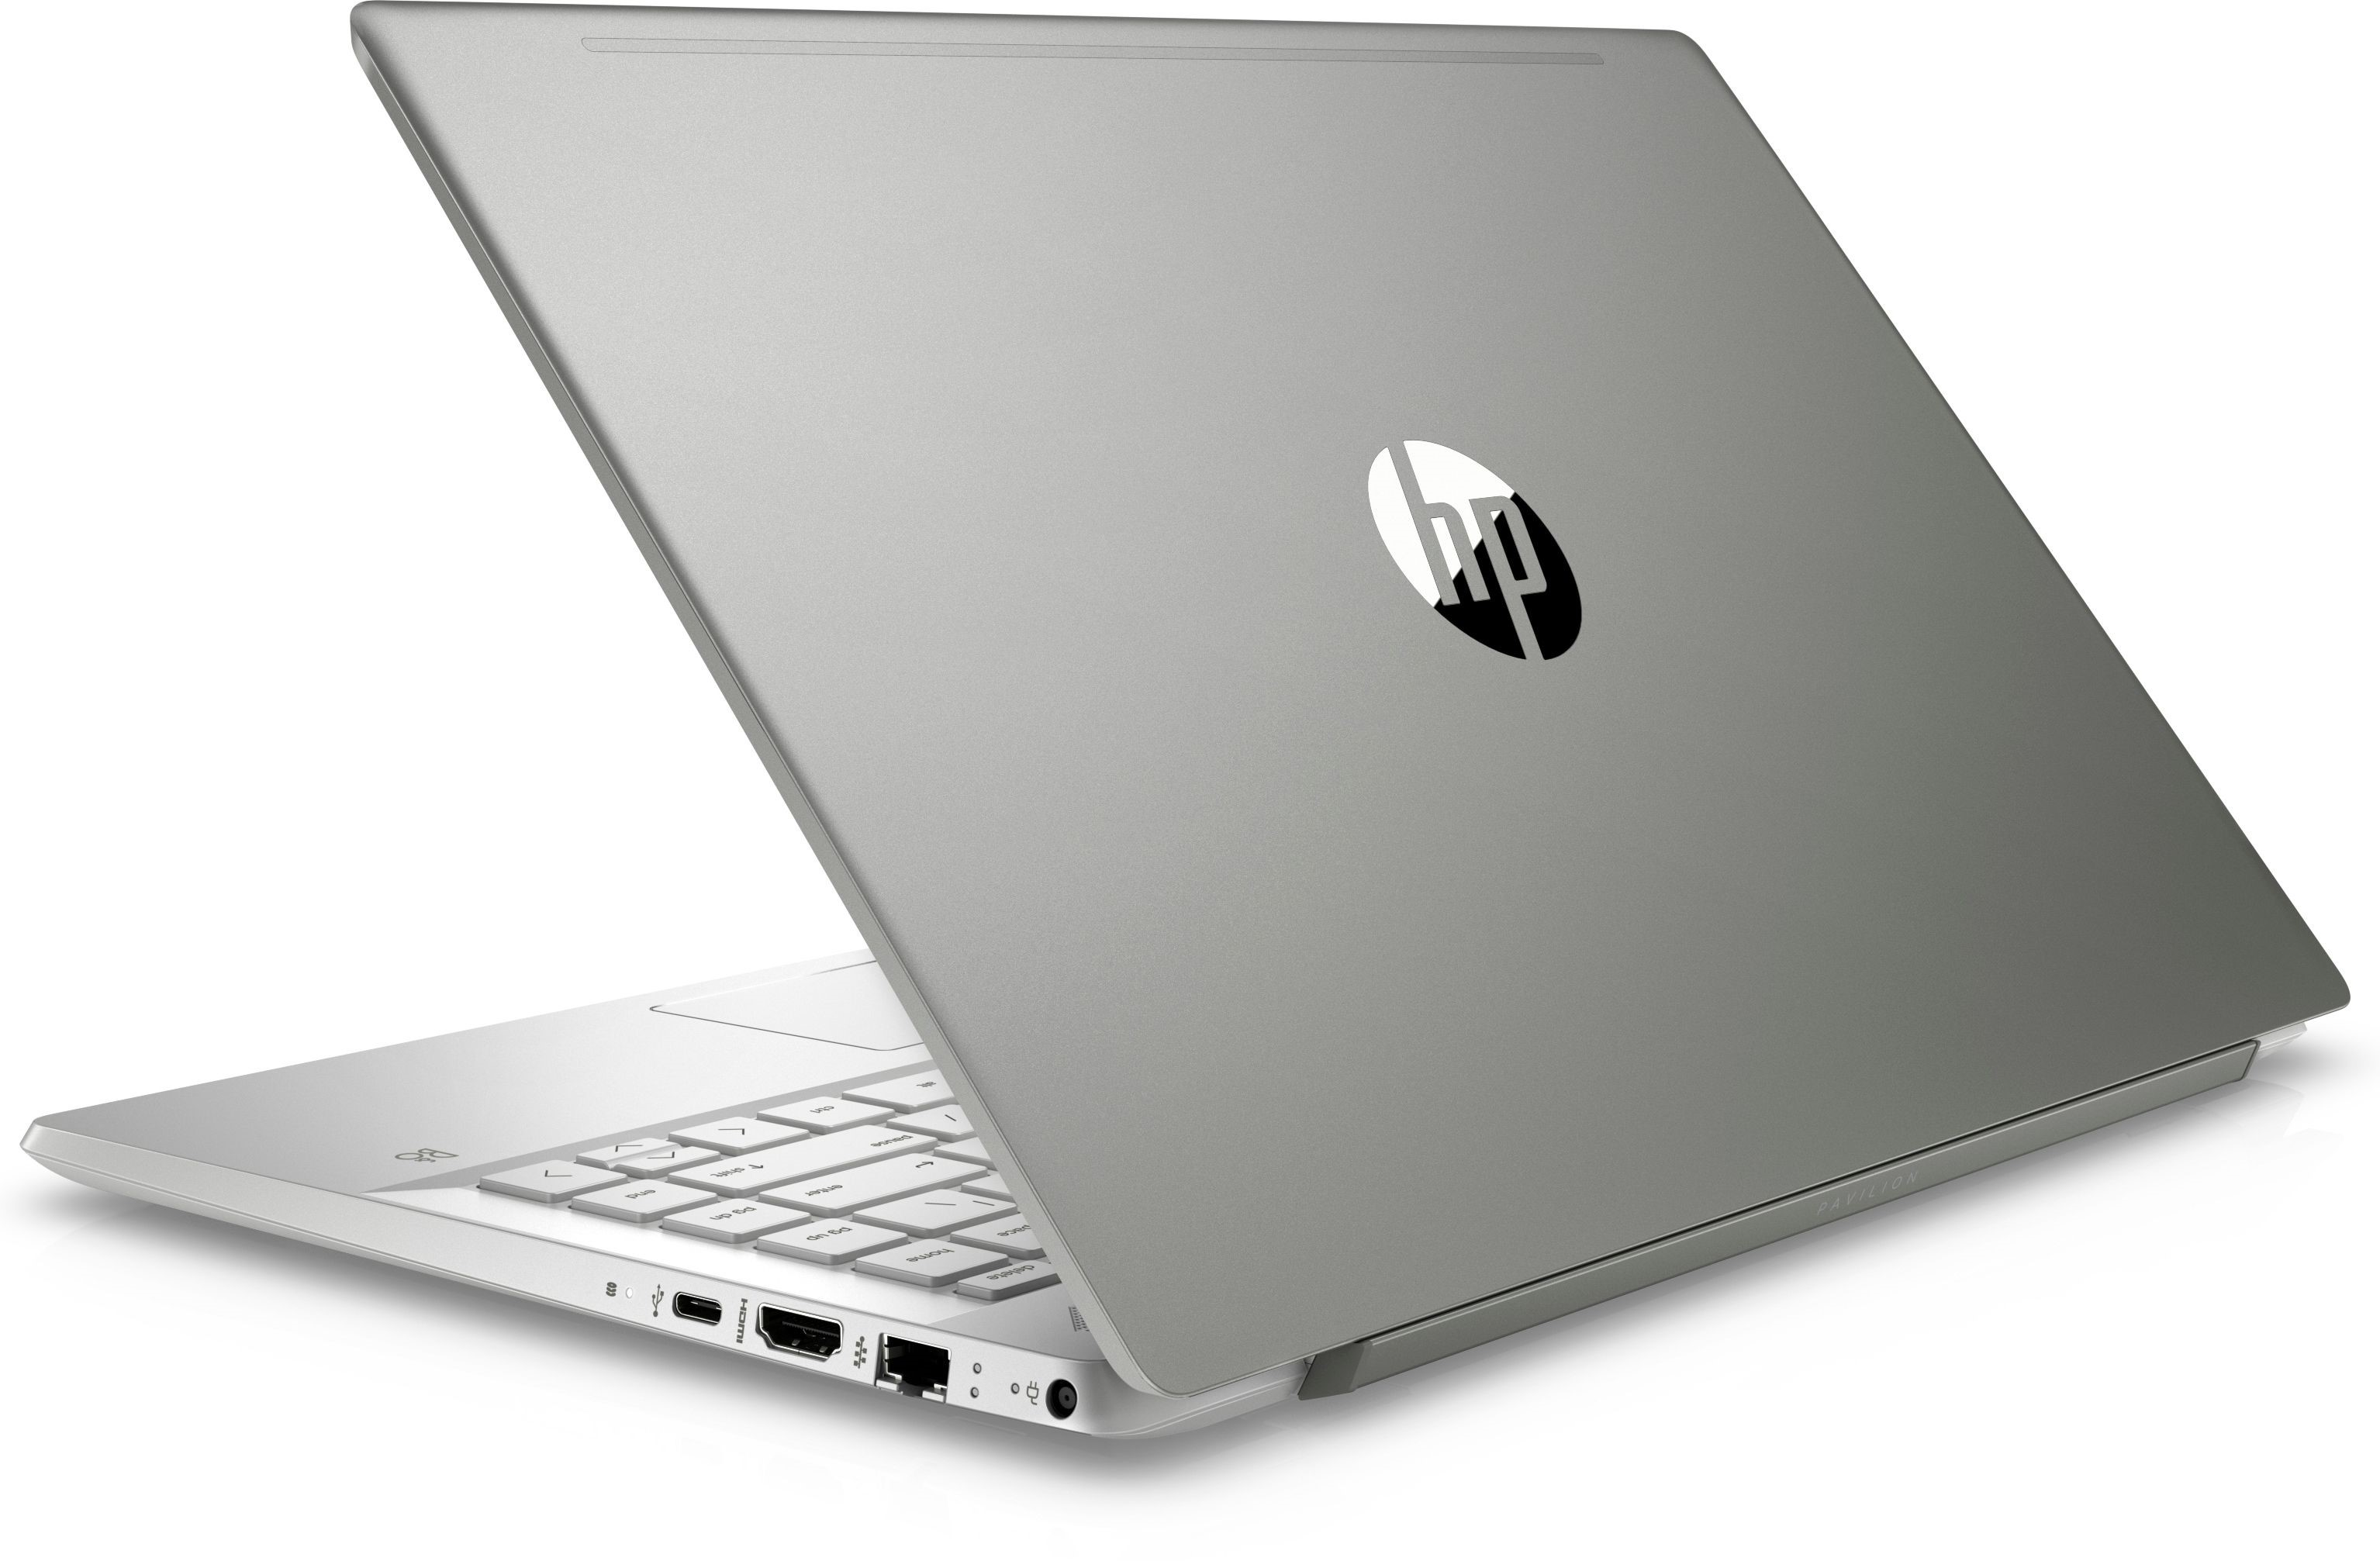 Hp Pavilion 14-ce3002nj